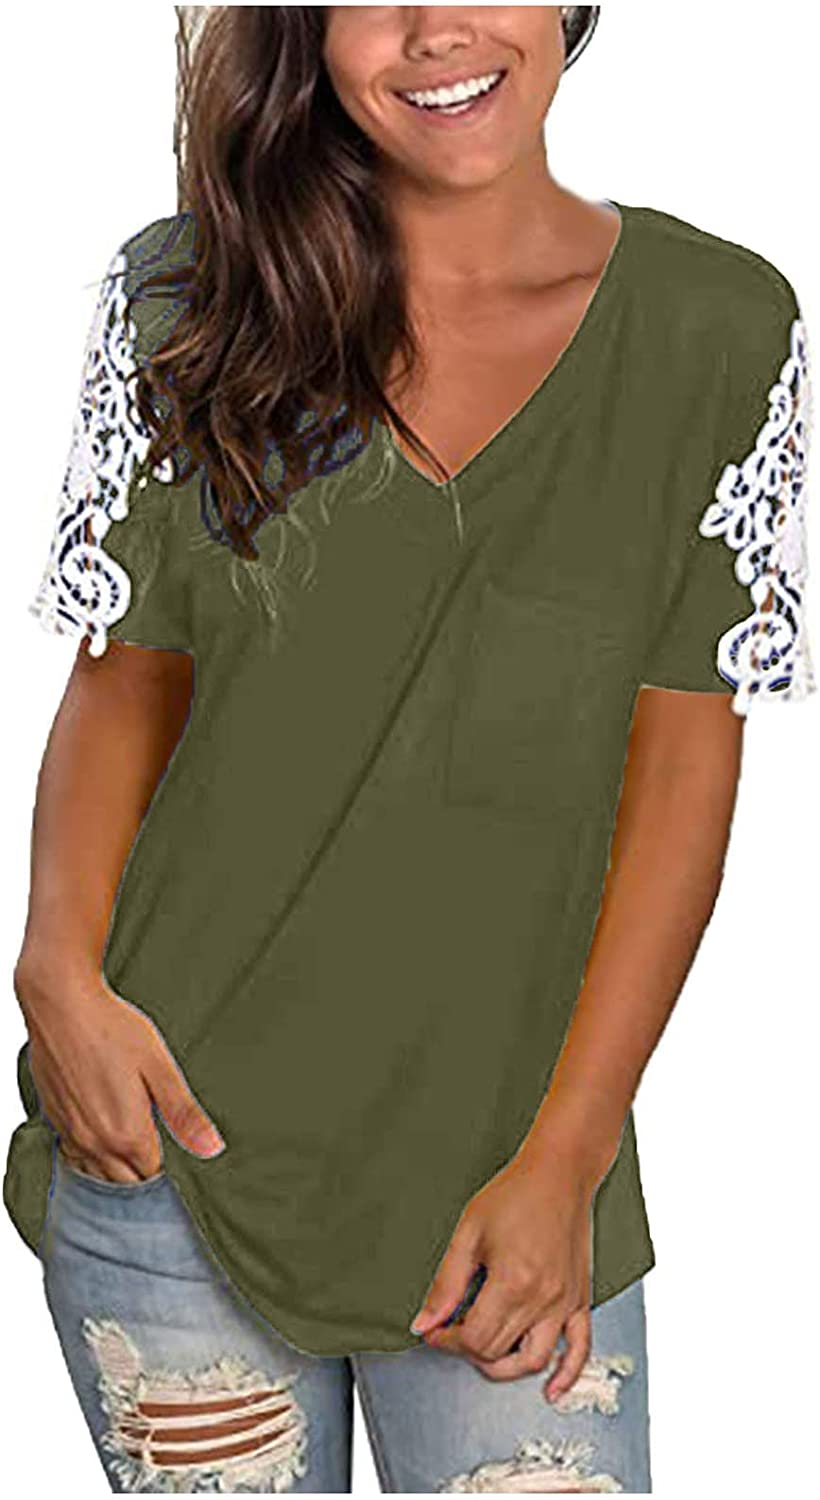 RKSTN Womens Tops Solid T-Shirts Patchwork San Francisco Mall Popular standard Lace Tee Tees V-Neck